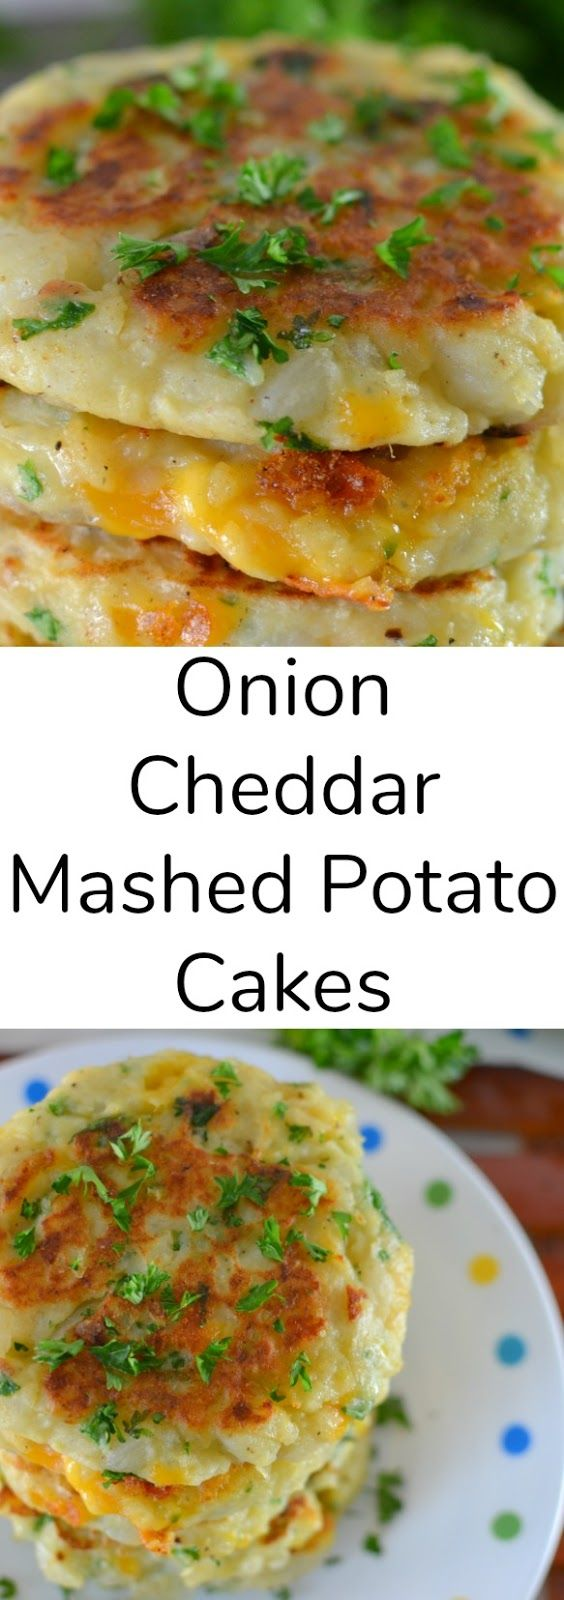 Onion and Cheddar Mashed Potato Cakes Recipe from Hot Eats and Cool Reads! This is one of the best recipes to use leftover mashed potatoes, especially after the holidays! A mixture of fresh herbs, garlic and some cheesy goodness makes this potato pancake perfection!